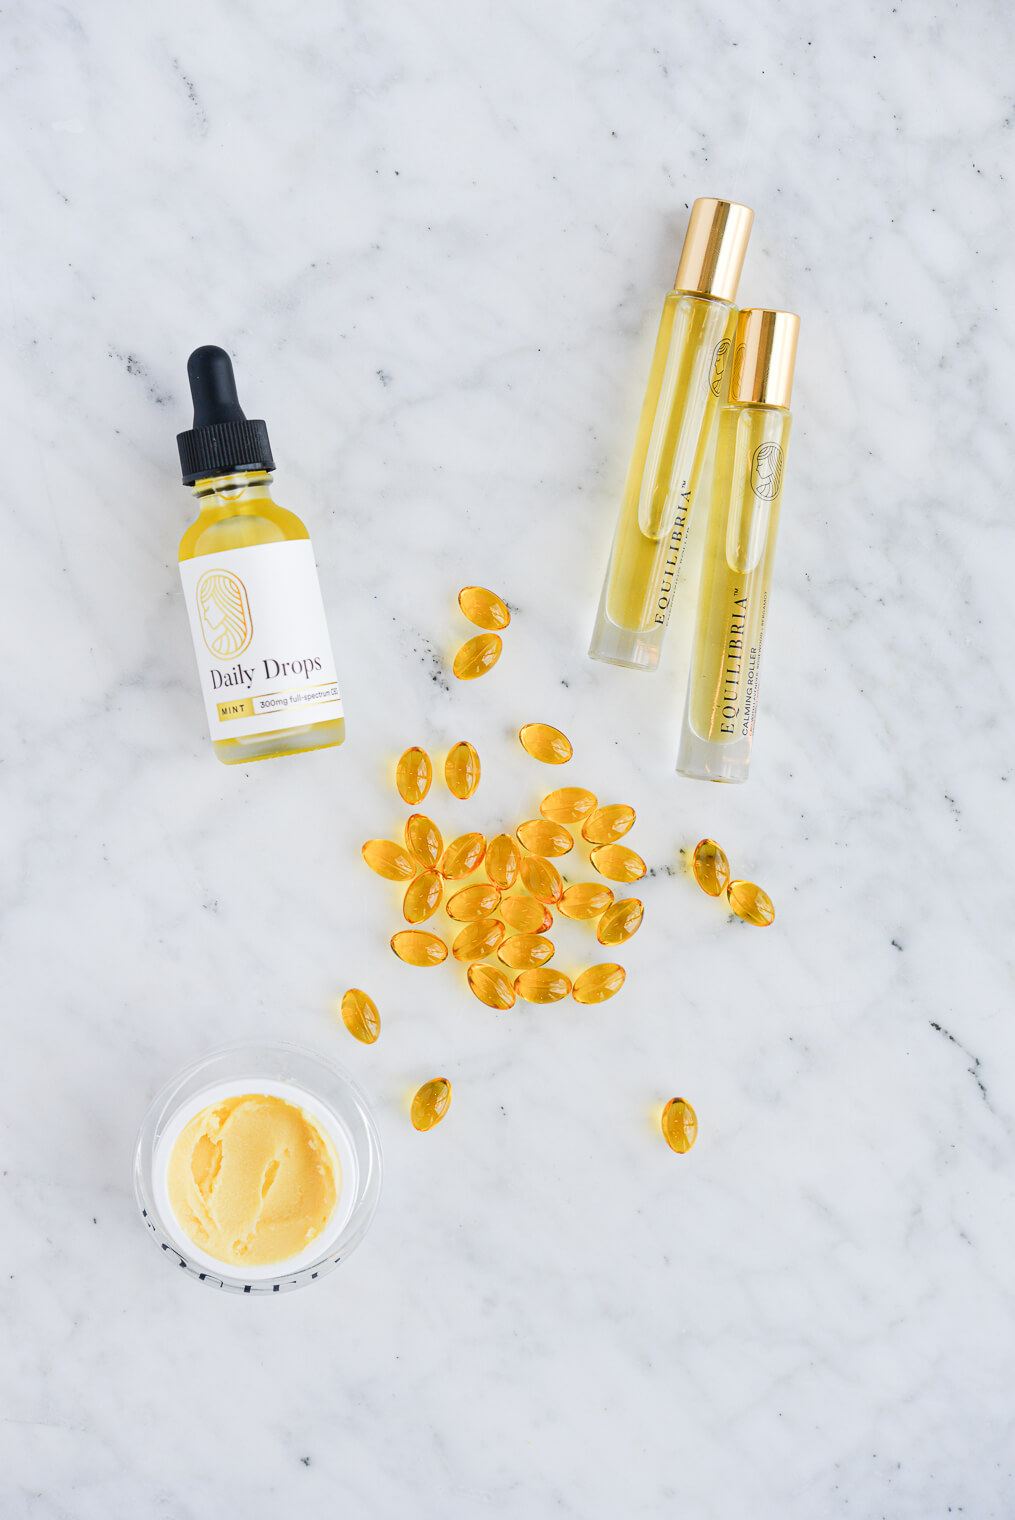 equilibria cbd drops, rollers, cream, and softgels on a marble surface